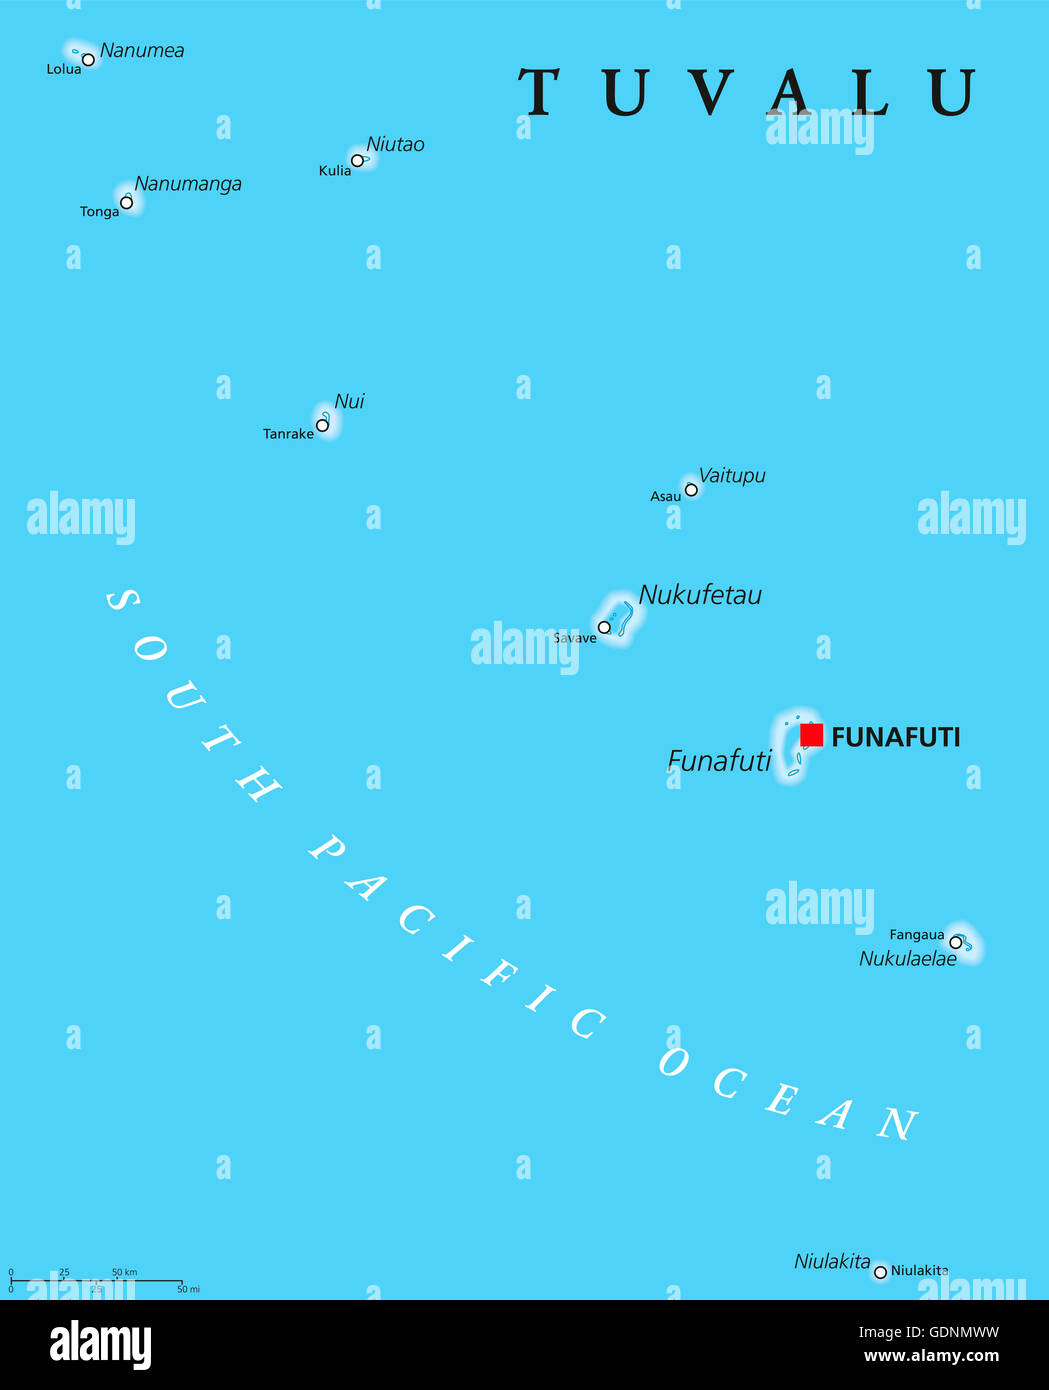 Tuvalu Political Map With Capital Funafuti And Important Villages - Tuvalu map